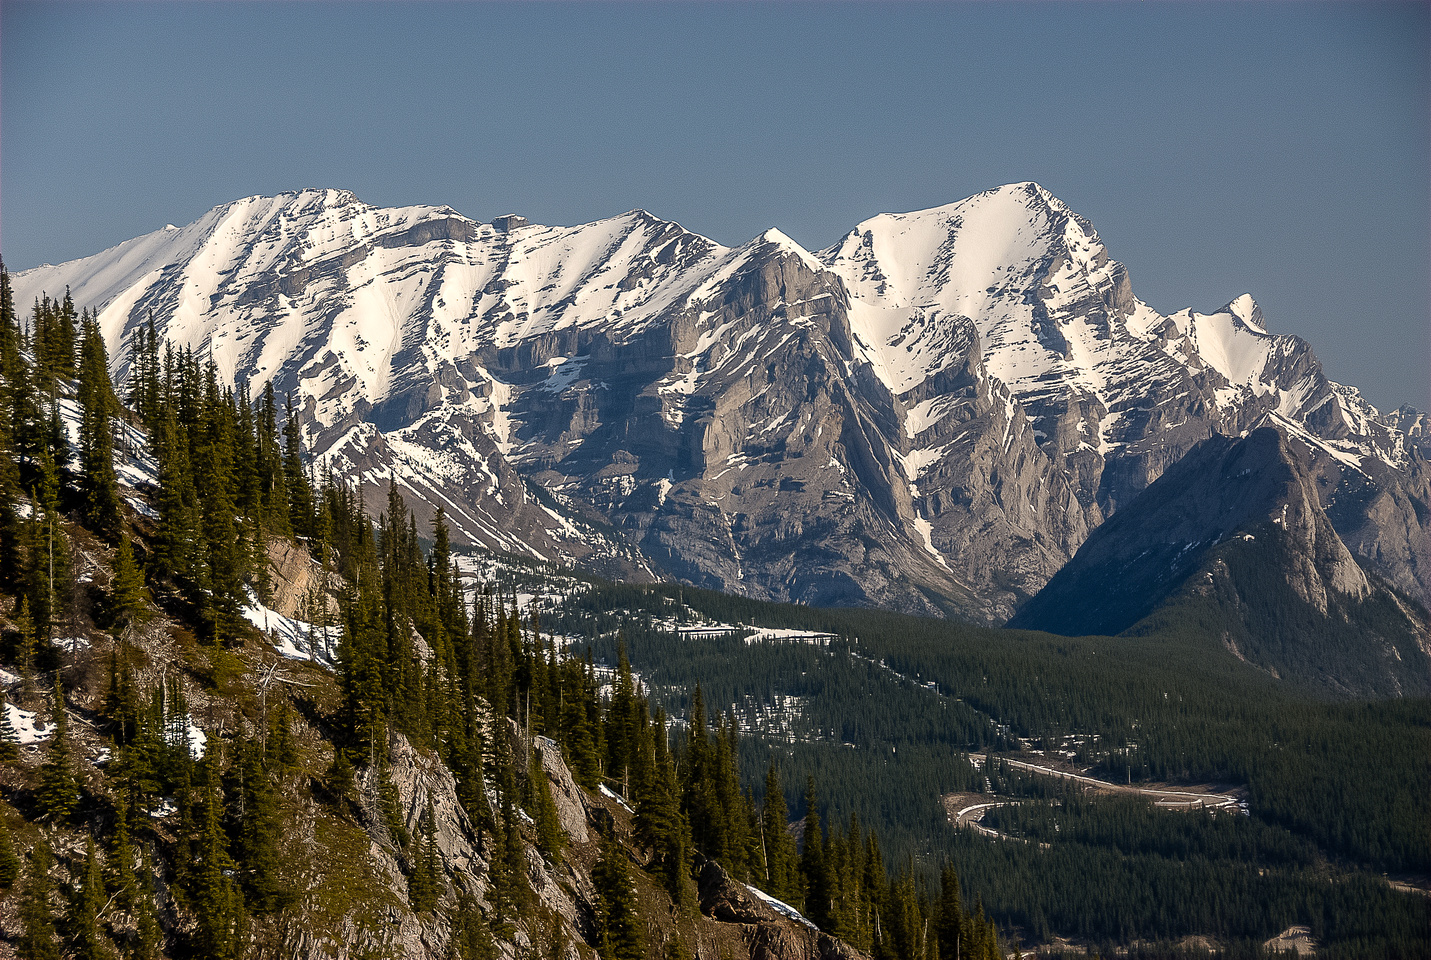 Great views of Mount Kidd's south (L) and north (R) summits from the waterfall drainage.